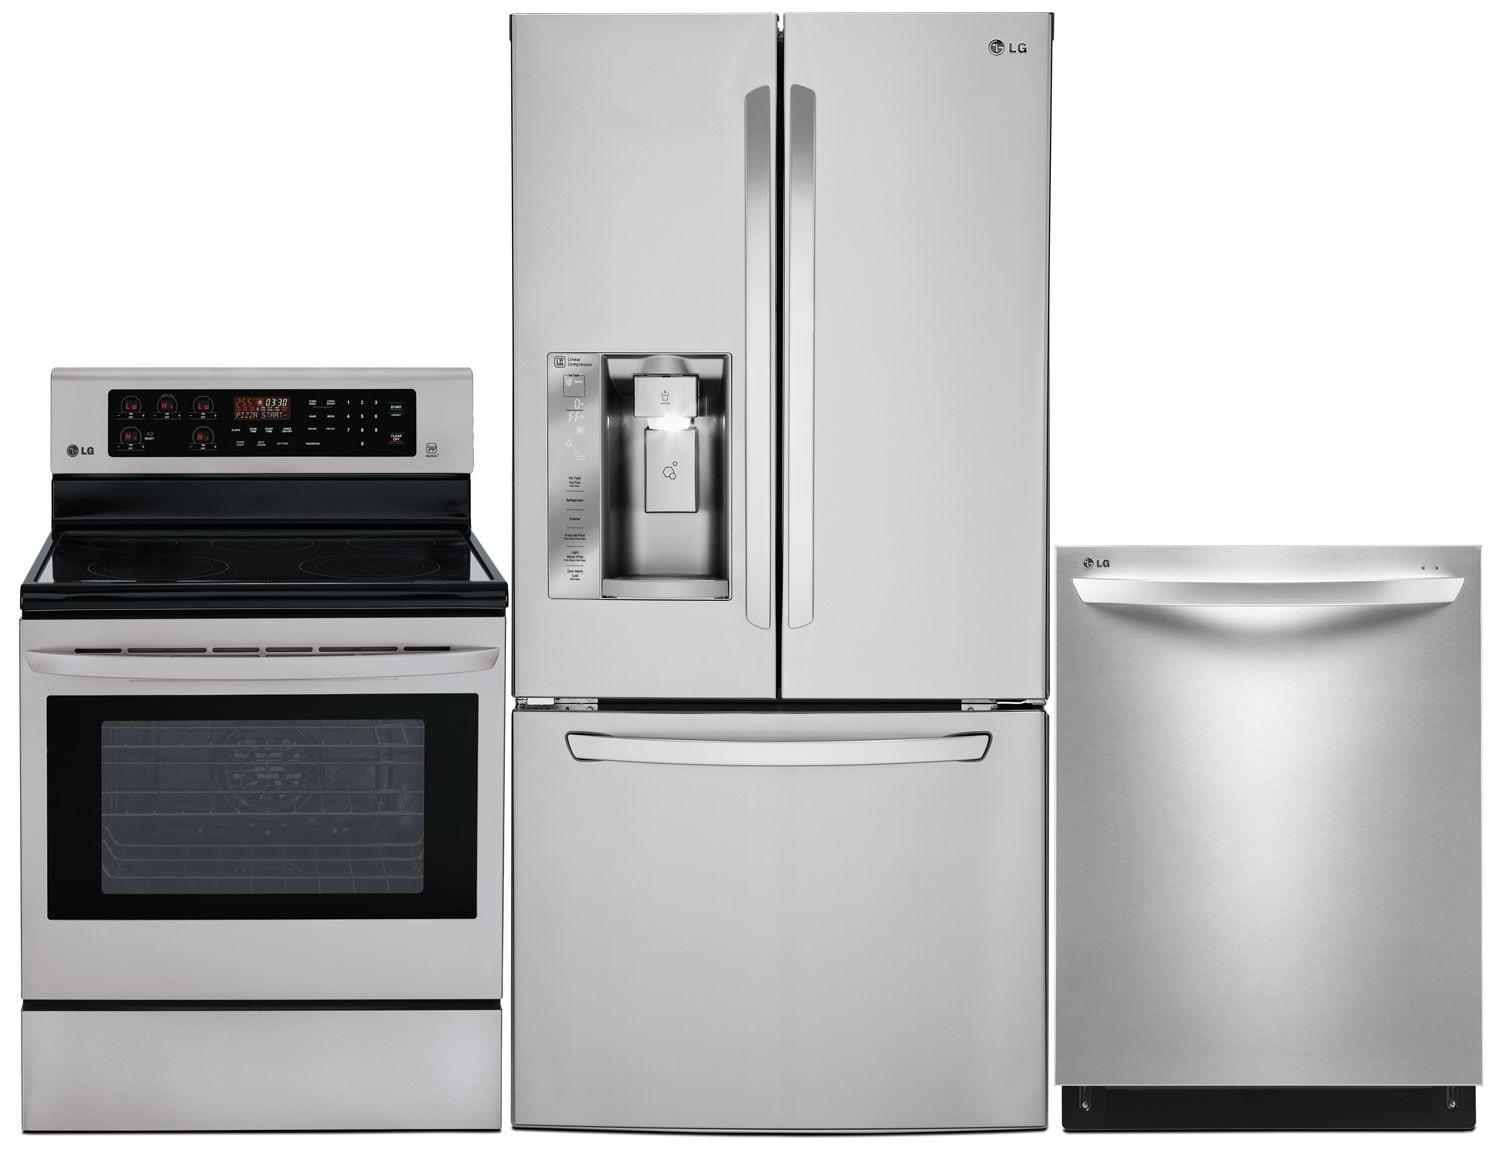 Clean-Up - LG 24.2 Cu. Ft. Refrigerator, 6.3 Cu. Ft. Electric Range and Built-In Dishwasher